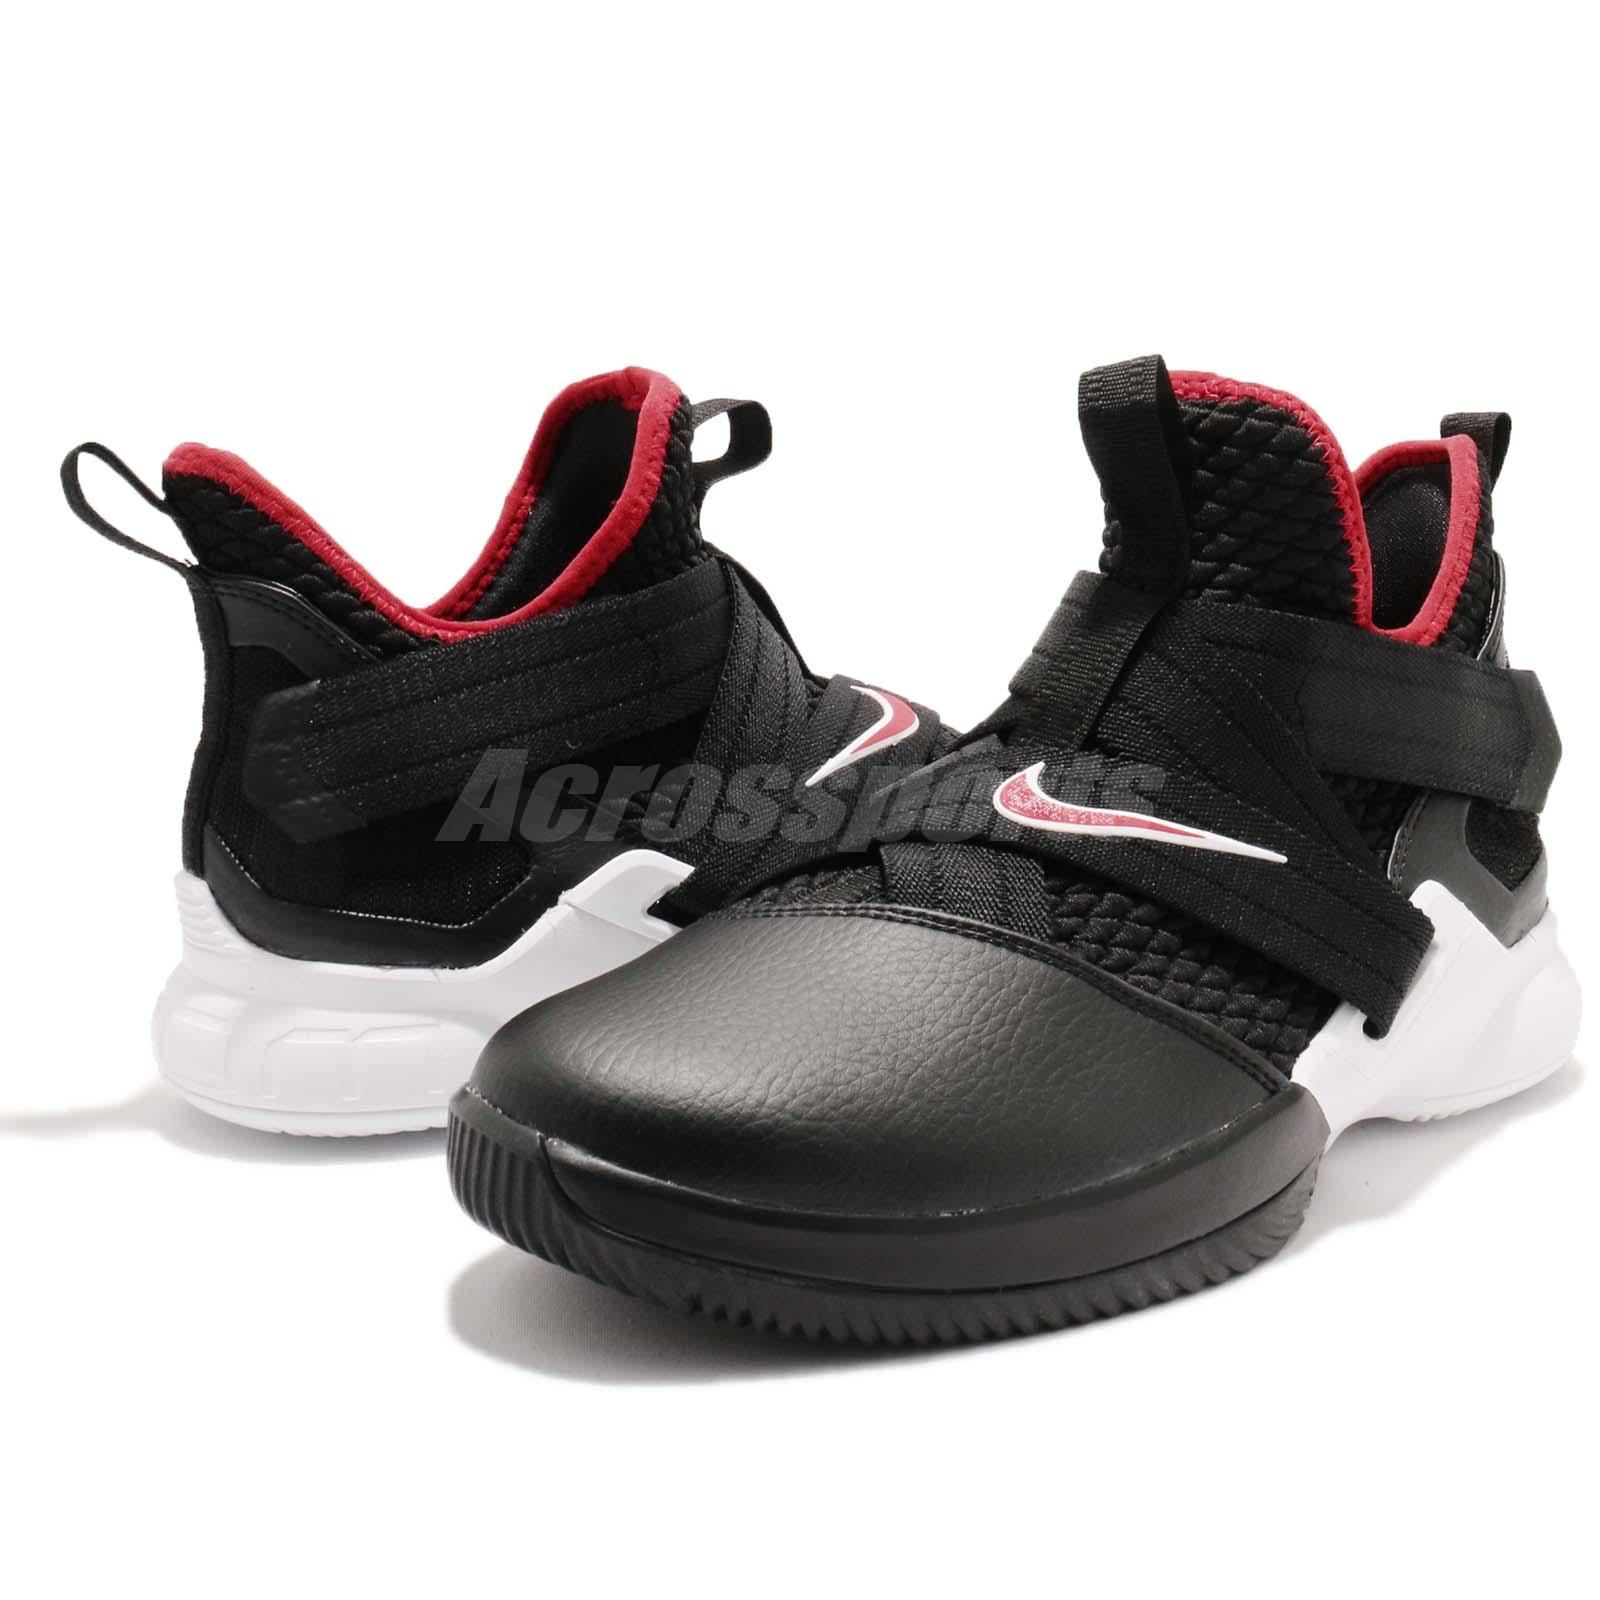 01deb429e1cc Nike LeBron Soldier XII GS 12 James Bred Black Red White Kid Youth ...